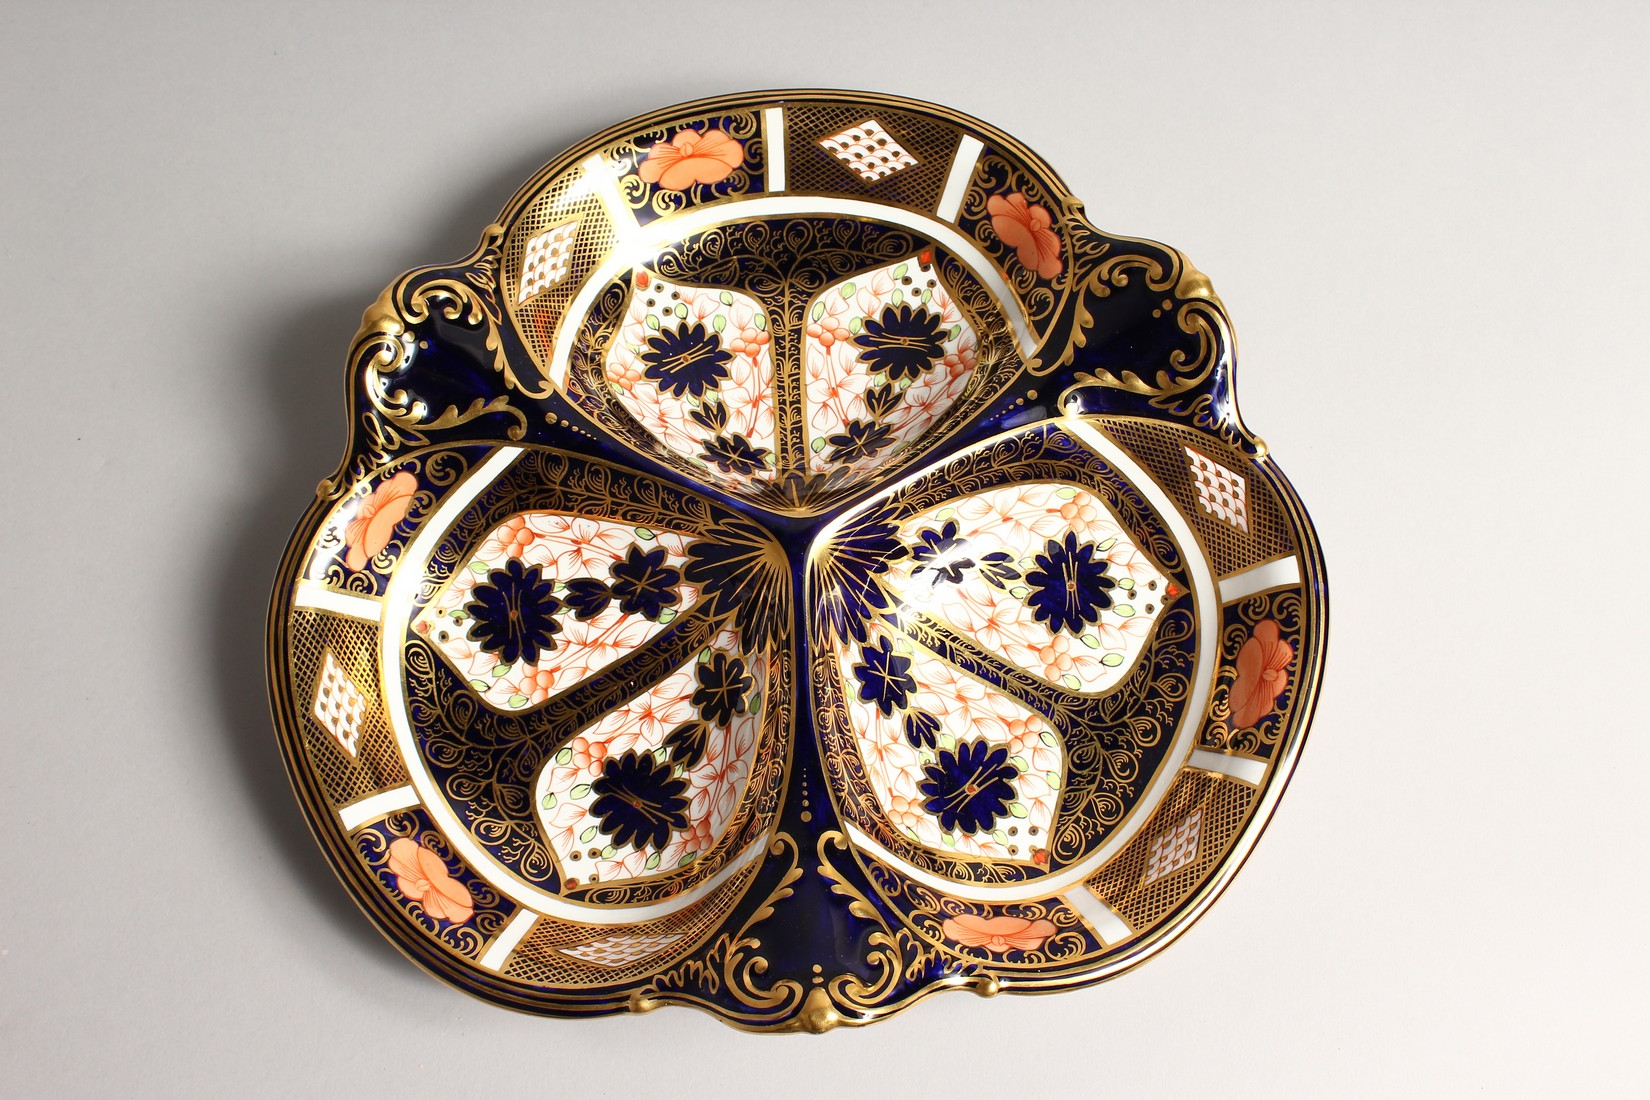 A ROYAL CROWN DERBY JAPAN PATTERN THREE DIVISION DISH. No. 1667 &1128 11ins wide. - Image 2 of 6